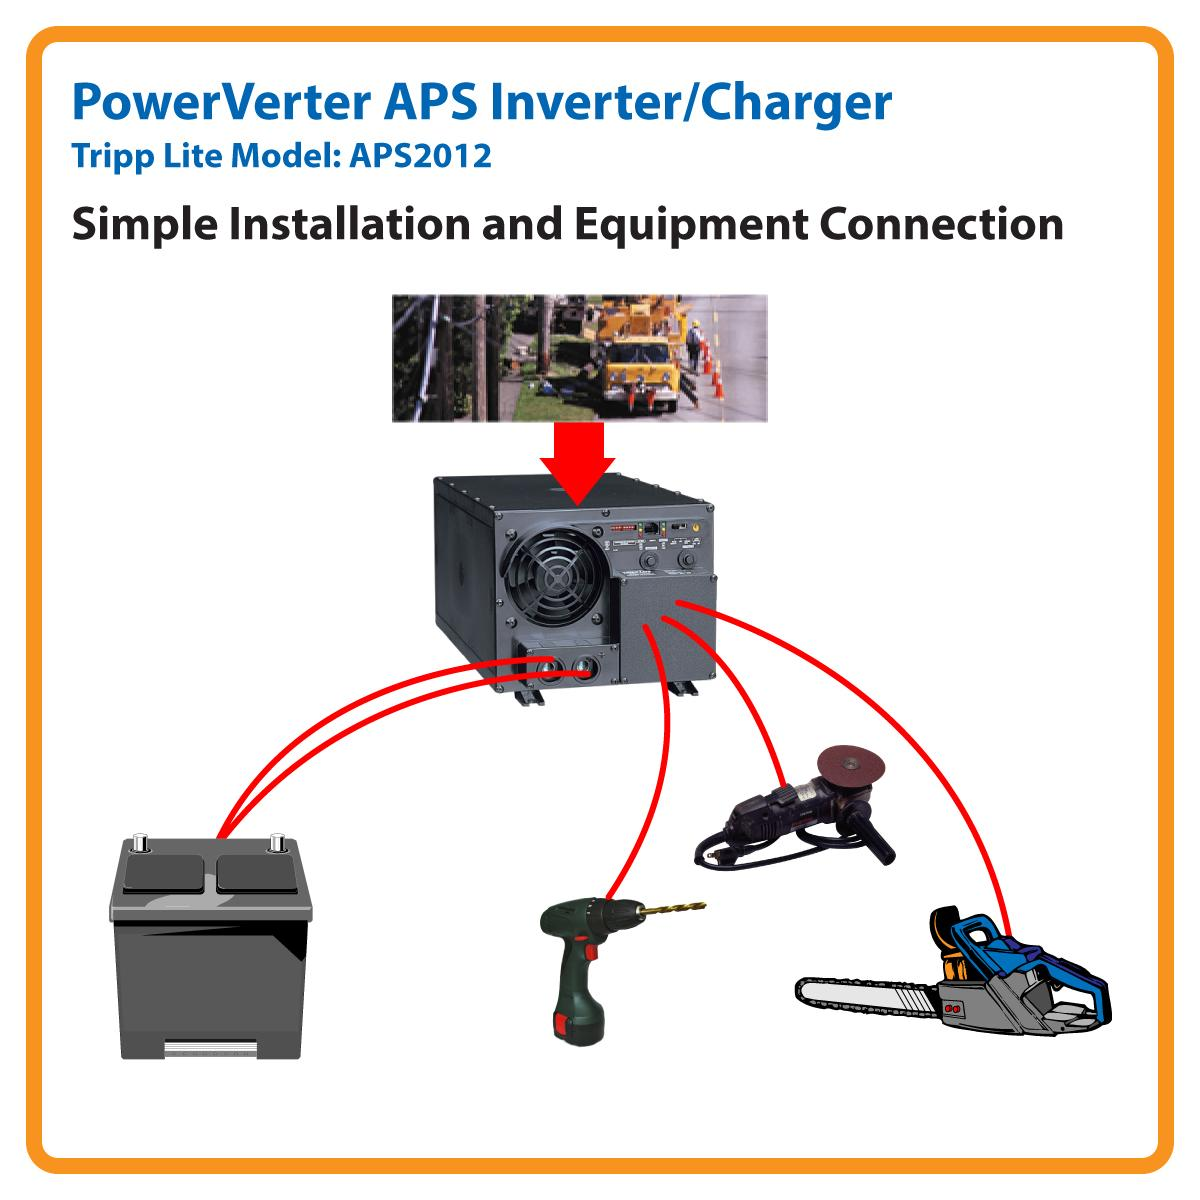 dual lite inverter wiring diagram dual image amazon com tripp lite aps2012 inverter charger 2000w 12v dc to on dual lite inverter wiring